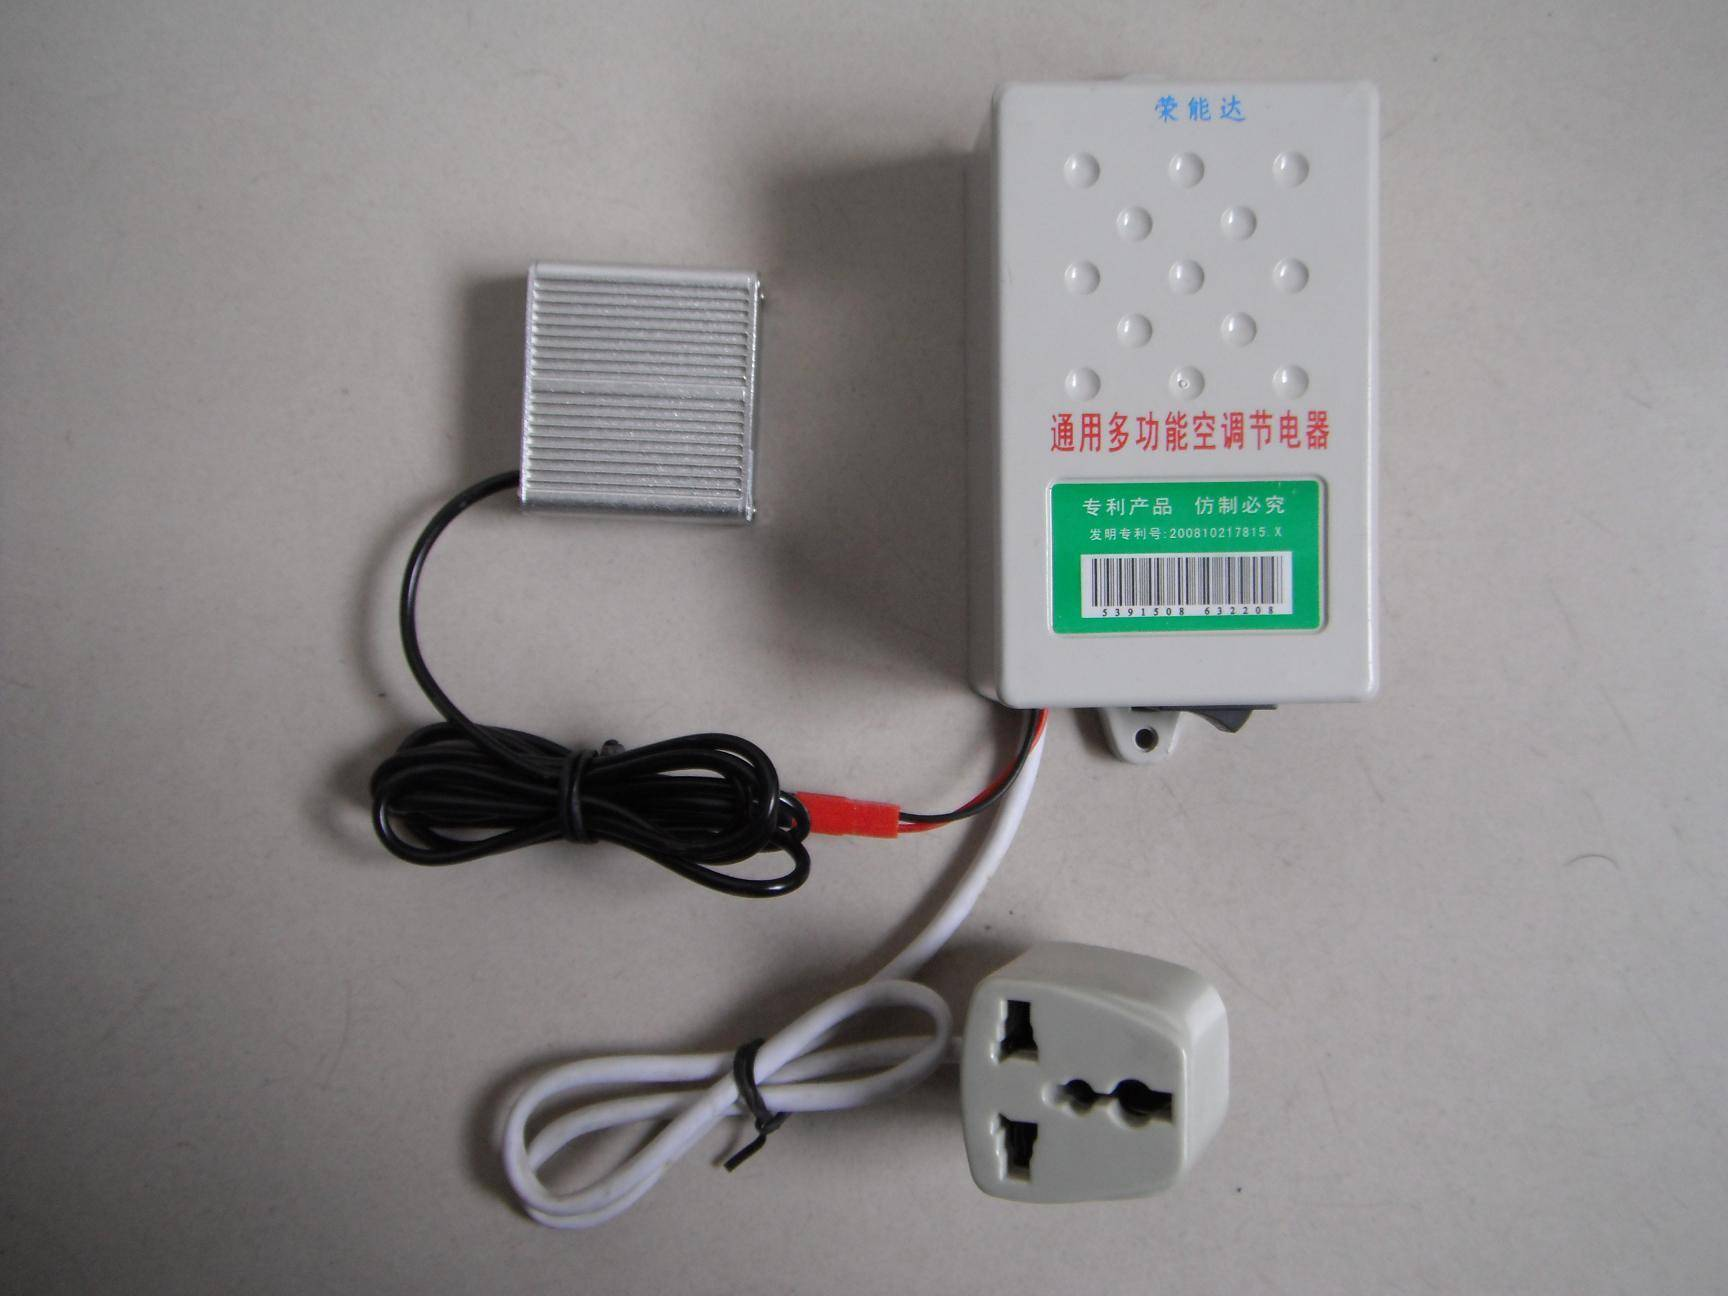 newest power saver for below 1.5P(1.5Pincluded)single phase air conditioners